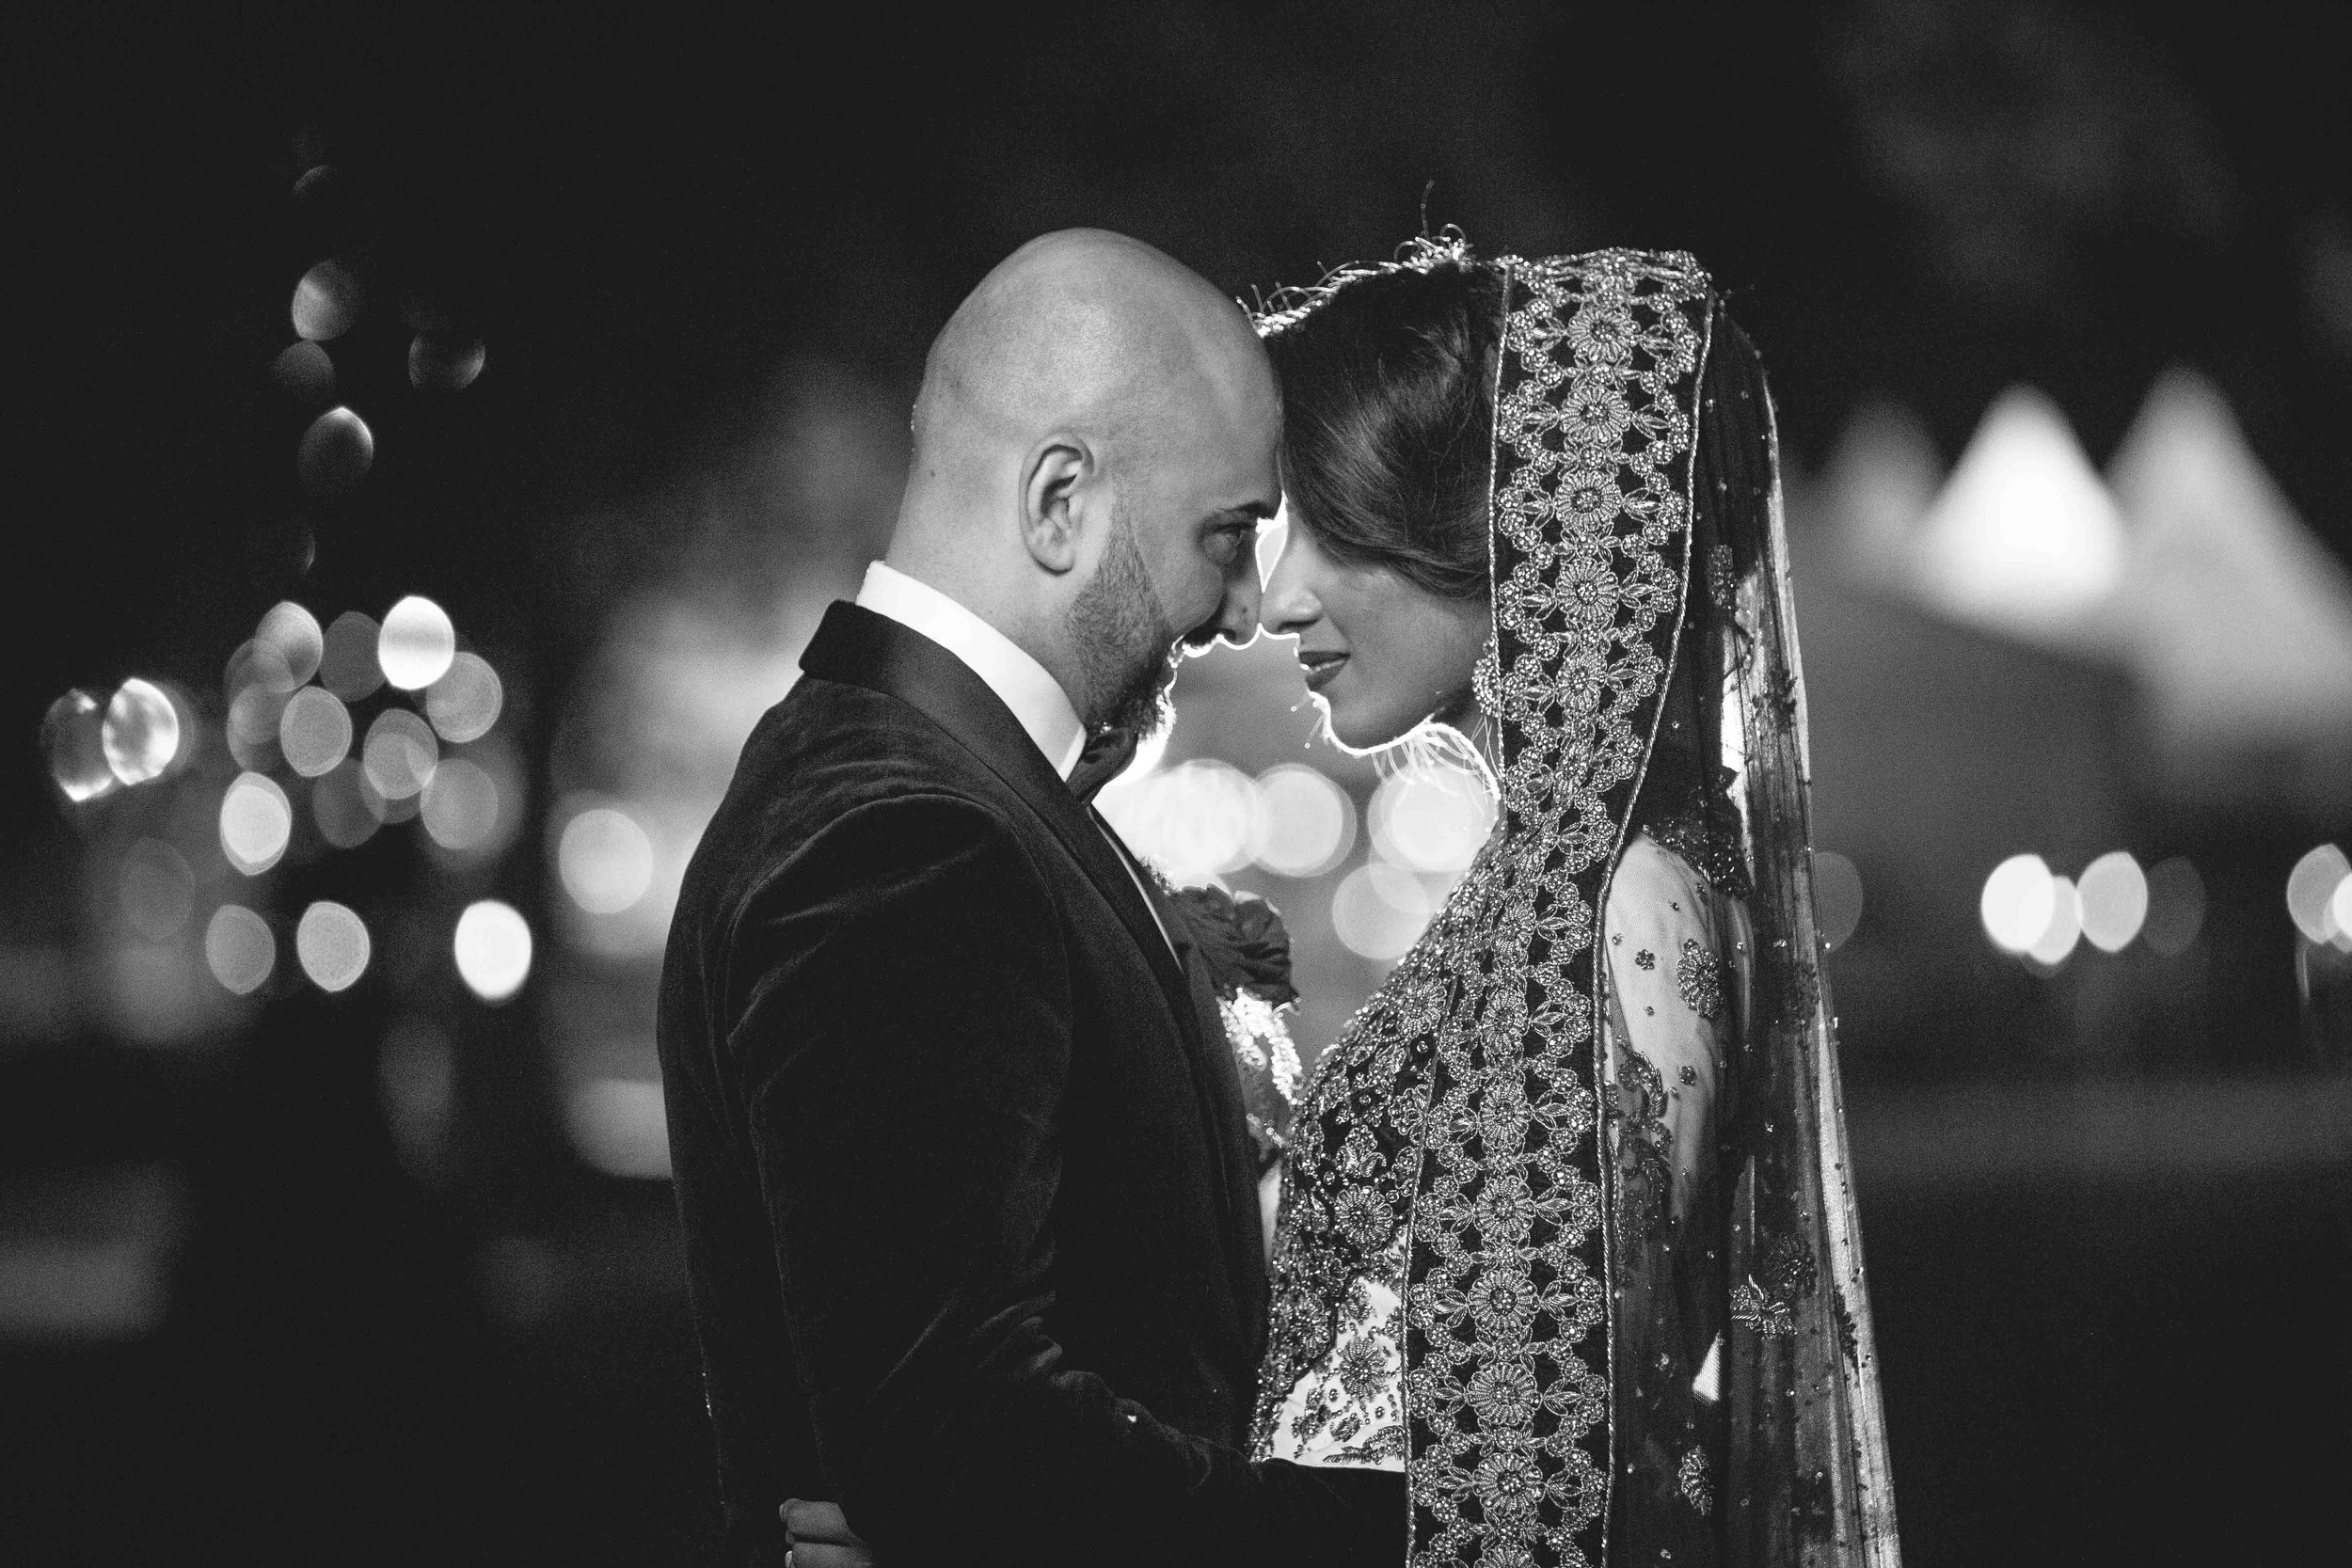 Asian Wedding Photographer Opu Sultan Photography Lyme Park Scotland Edinburgh Glasgow London Manchester Liverpool Birmingham Wedding Photos prewed shoot Azman & Saira Blog-129.jpg